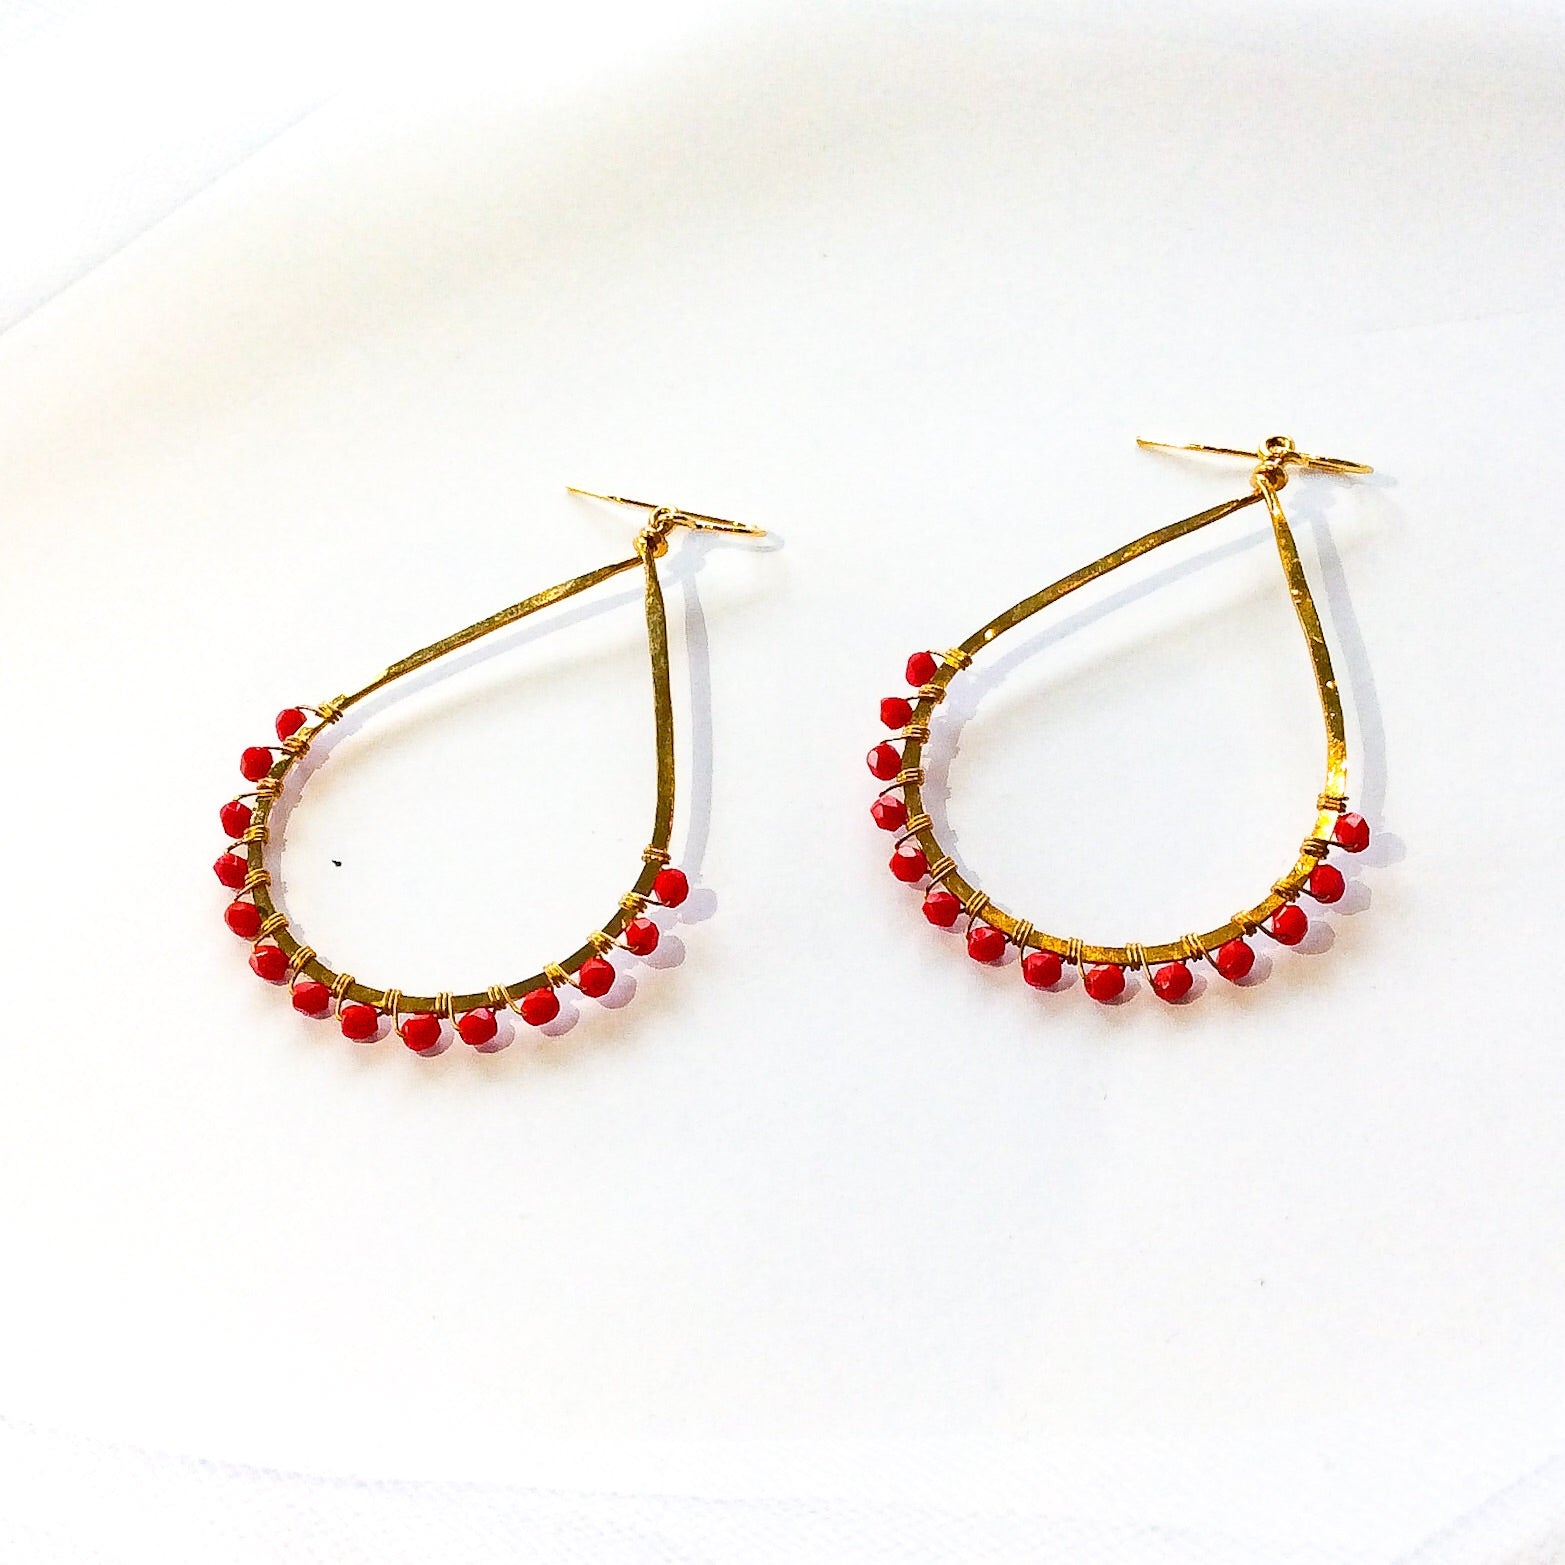 hammered gold plated tear drop earrings with red beads wired onto the end